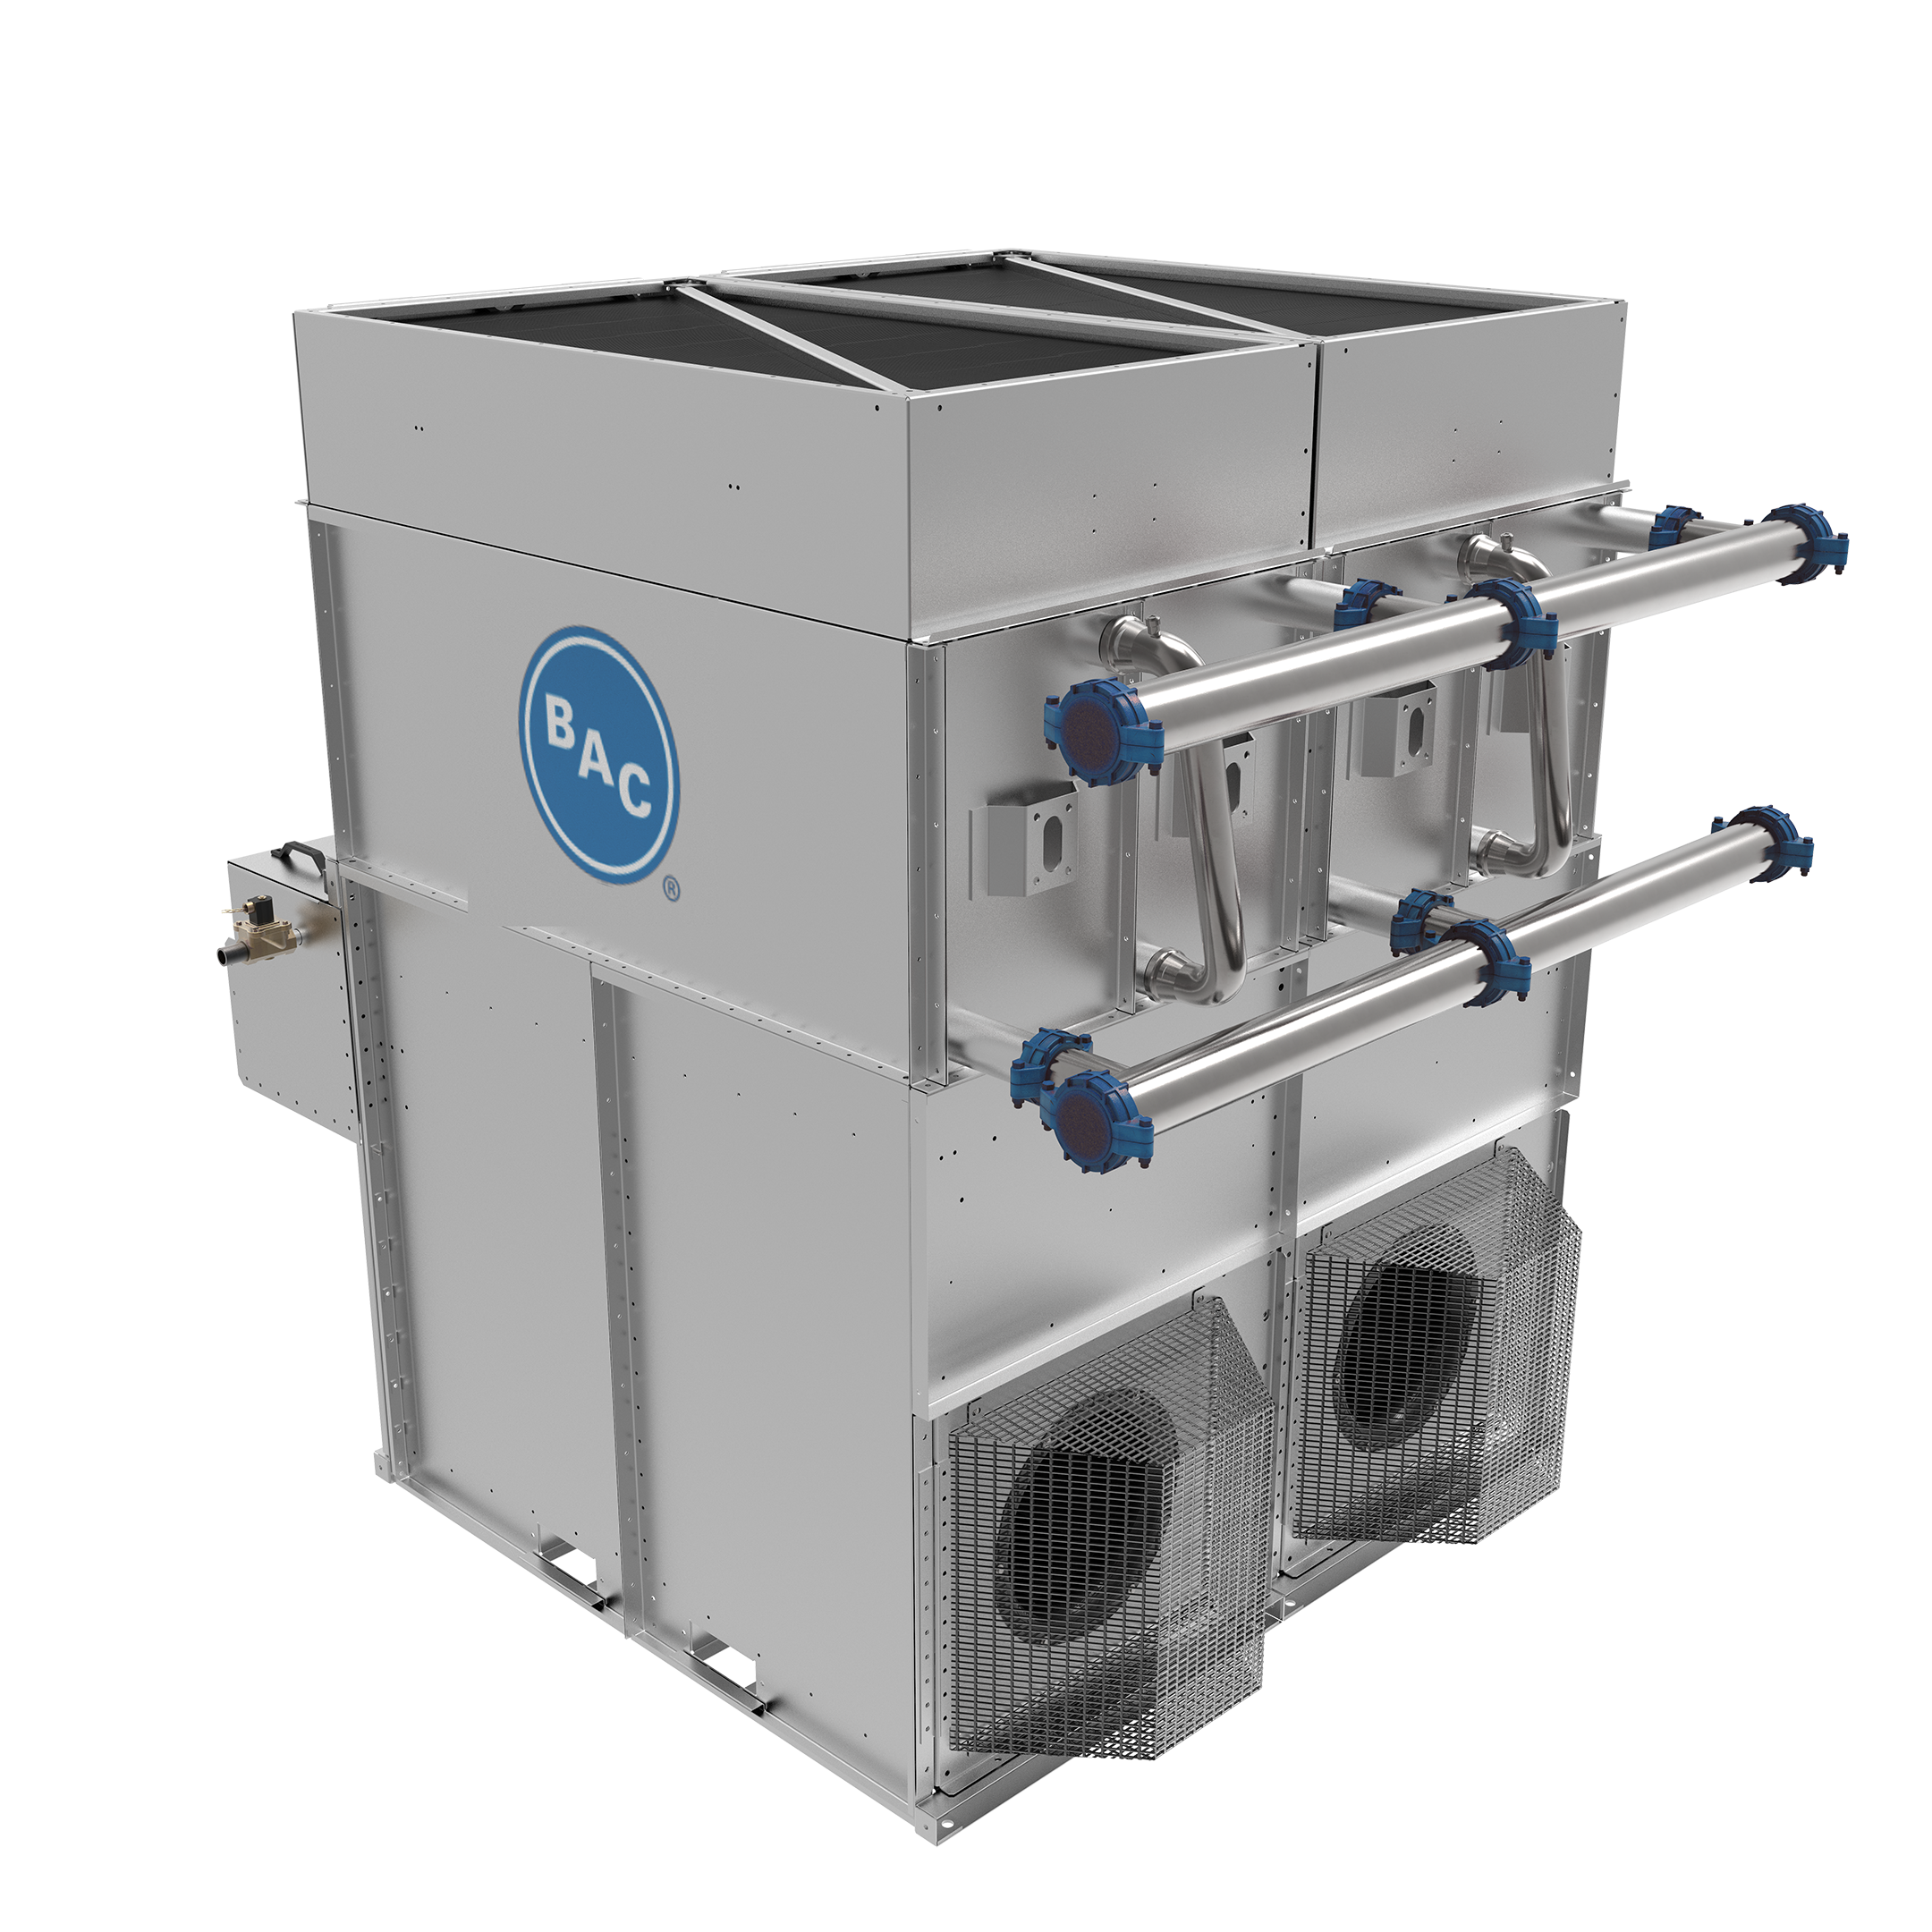 Baltimore Aircoil introduces Nexus Modular Hybrid Cooler